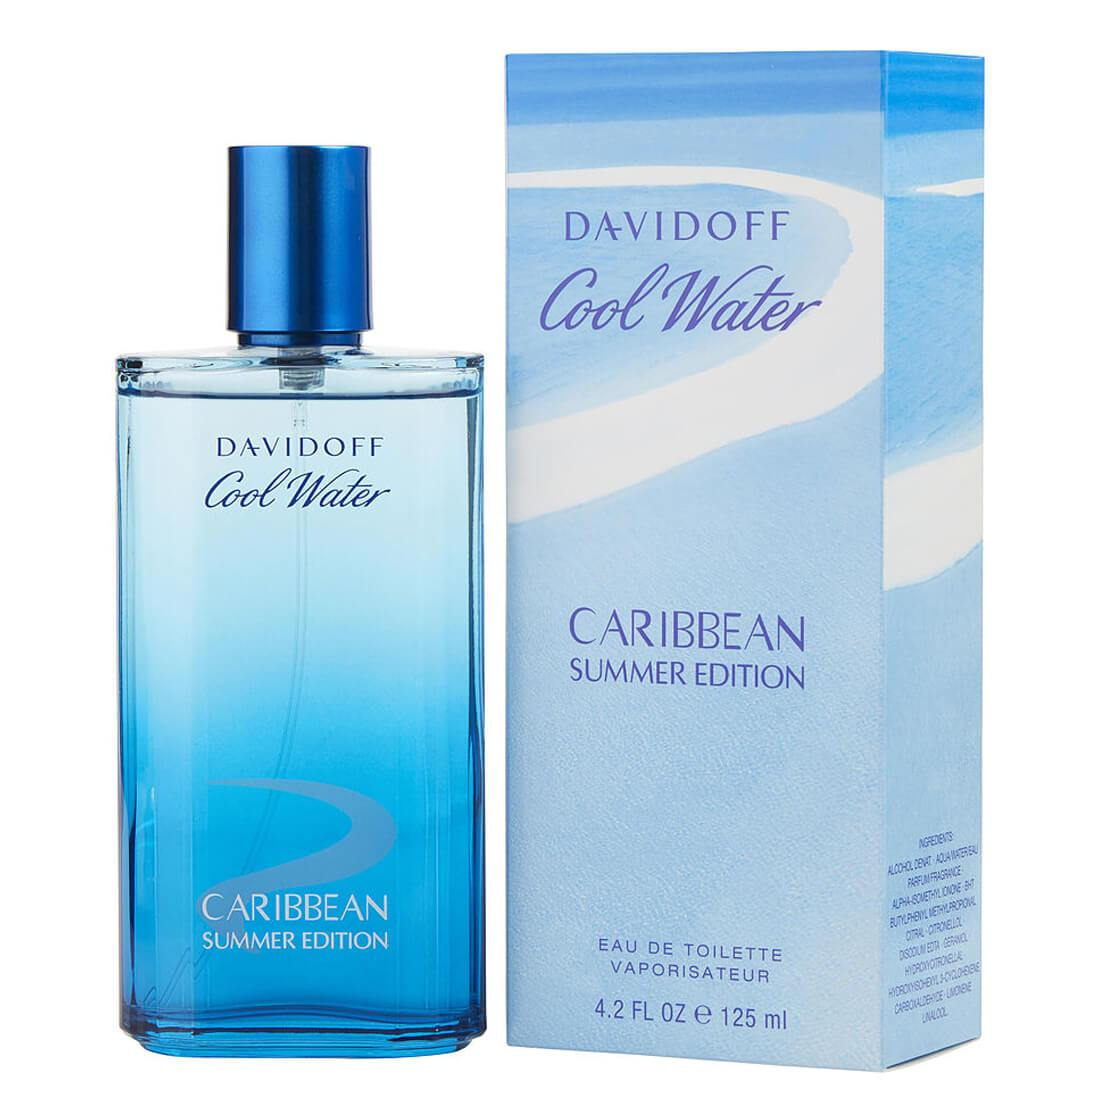 Davidoff Cool Water Caribbean Summer Perfume - 100ml